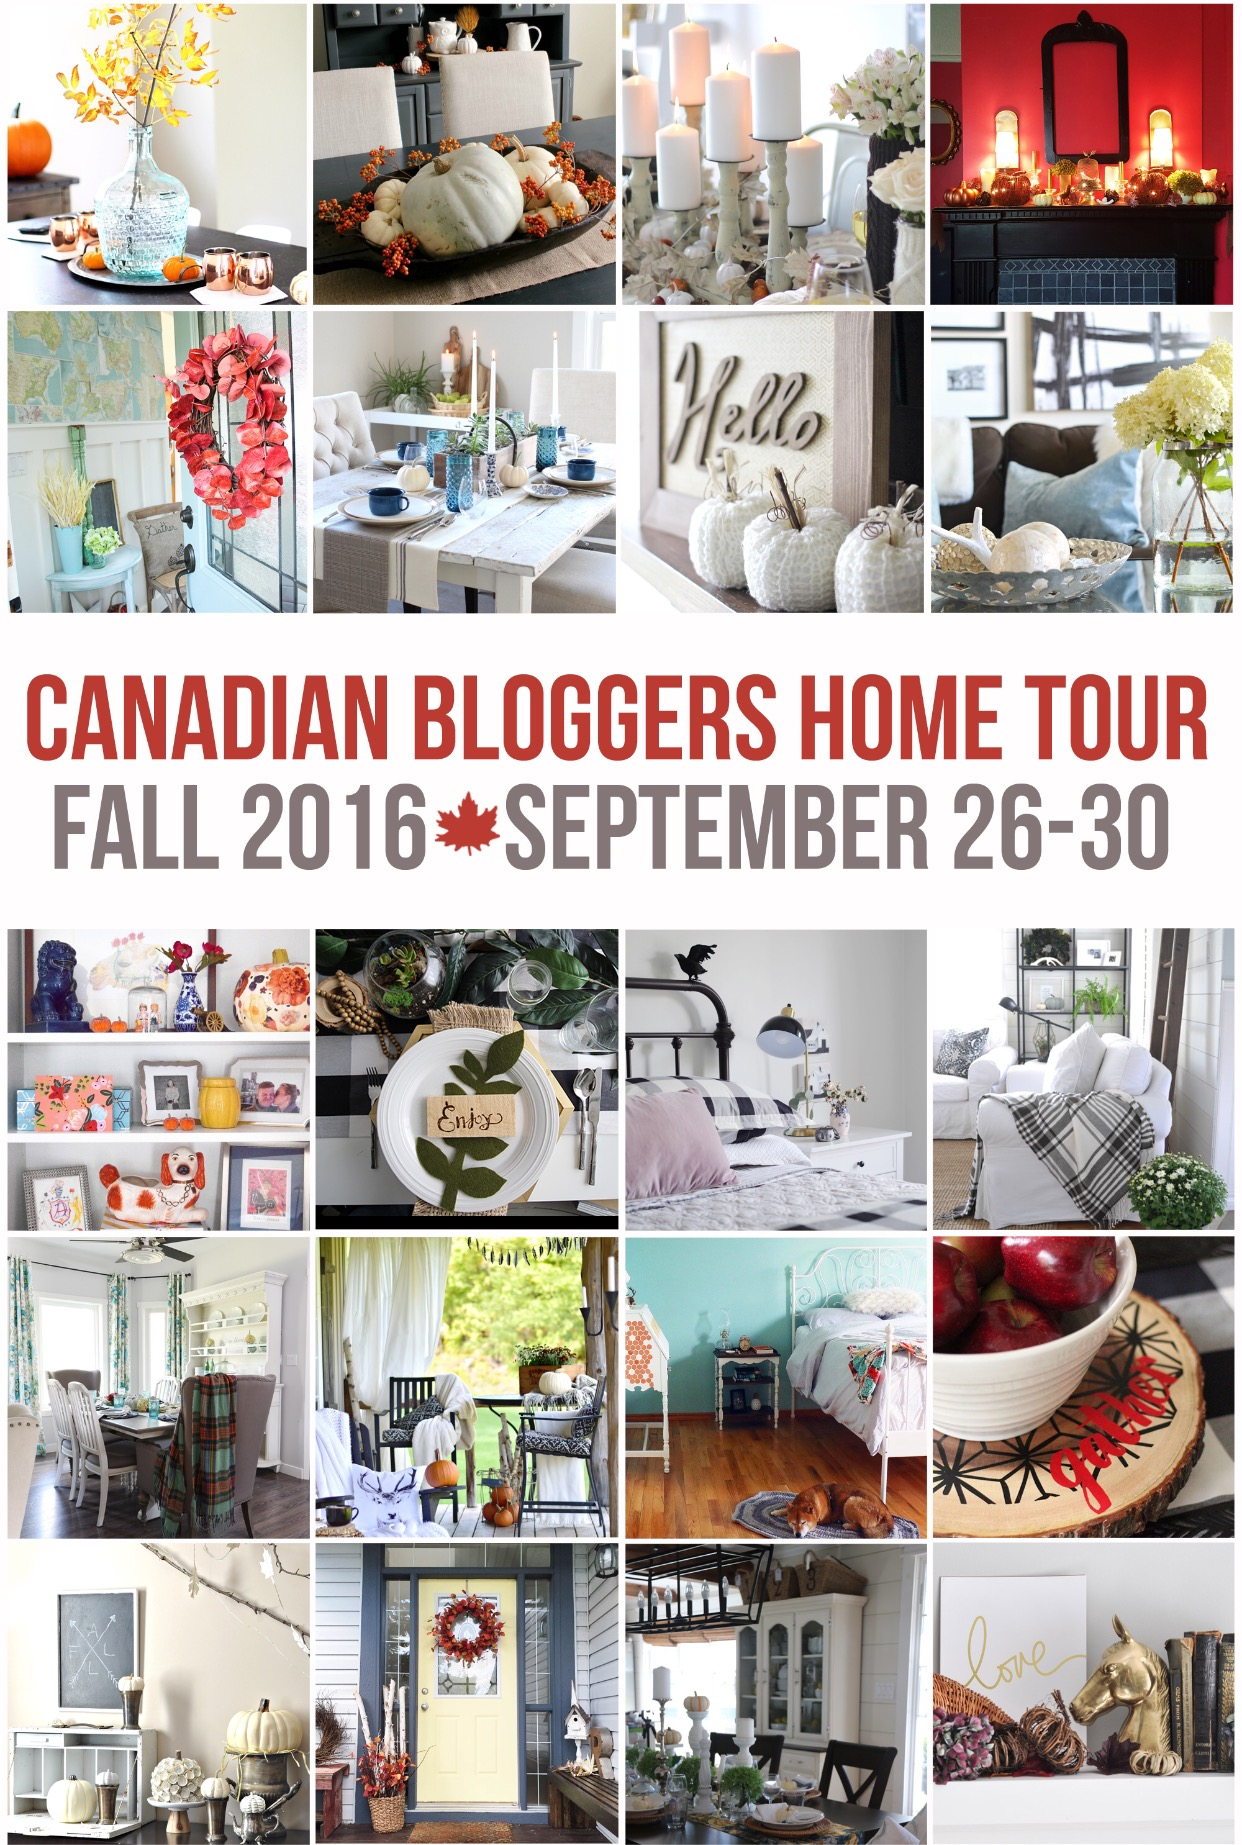 Itu0027s That Time Of Year Again, When I Join A Cross Canada Blogger Panel To  Let You Have A Little Peek Into Our Homes For Fall! This Week Youu0027ll Get To  See ...